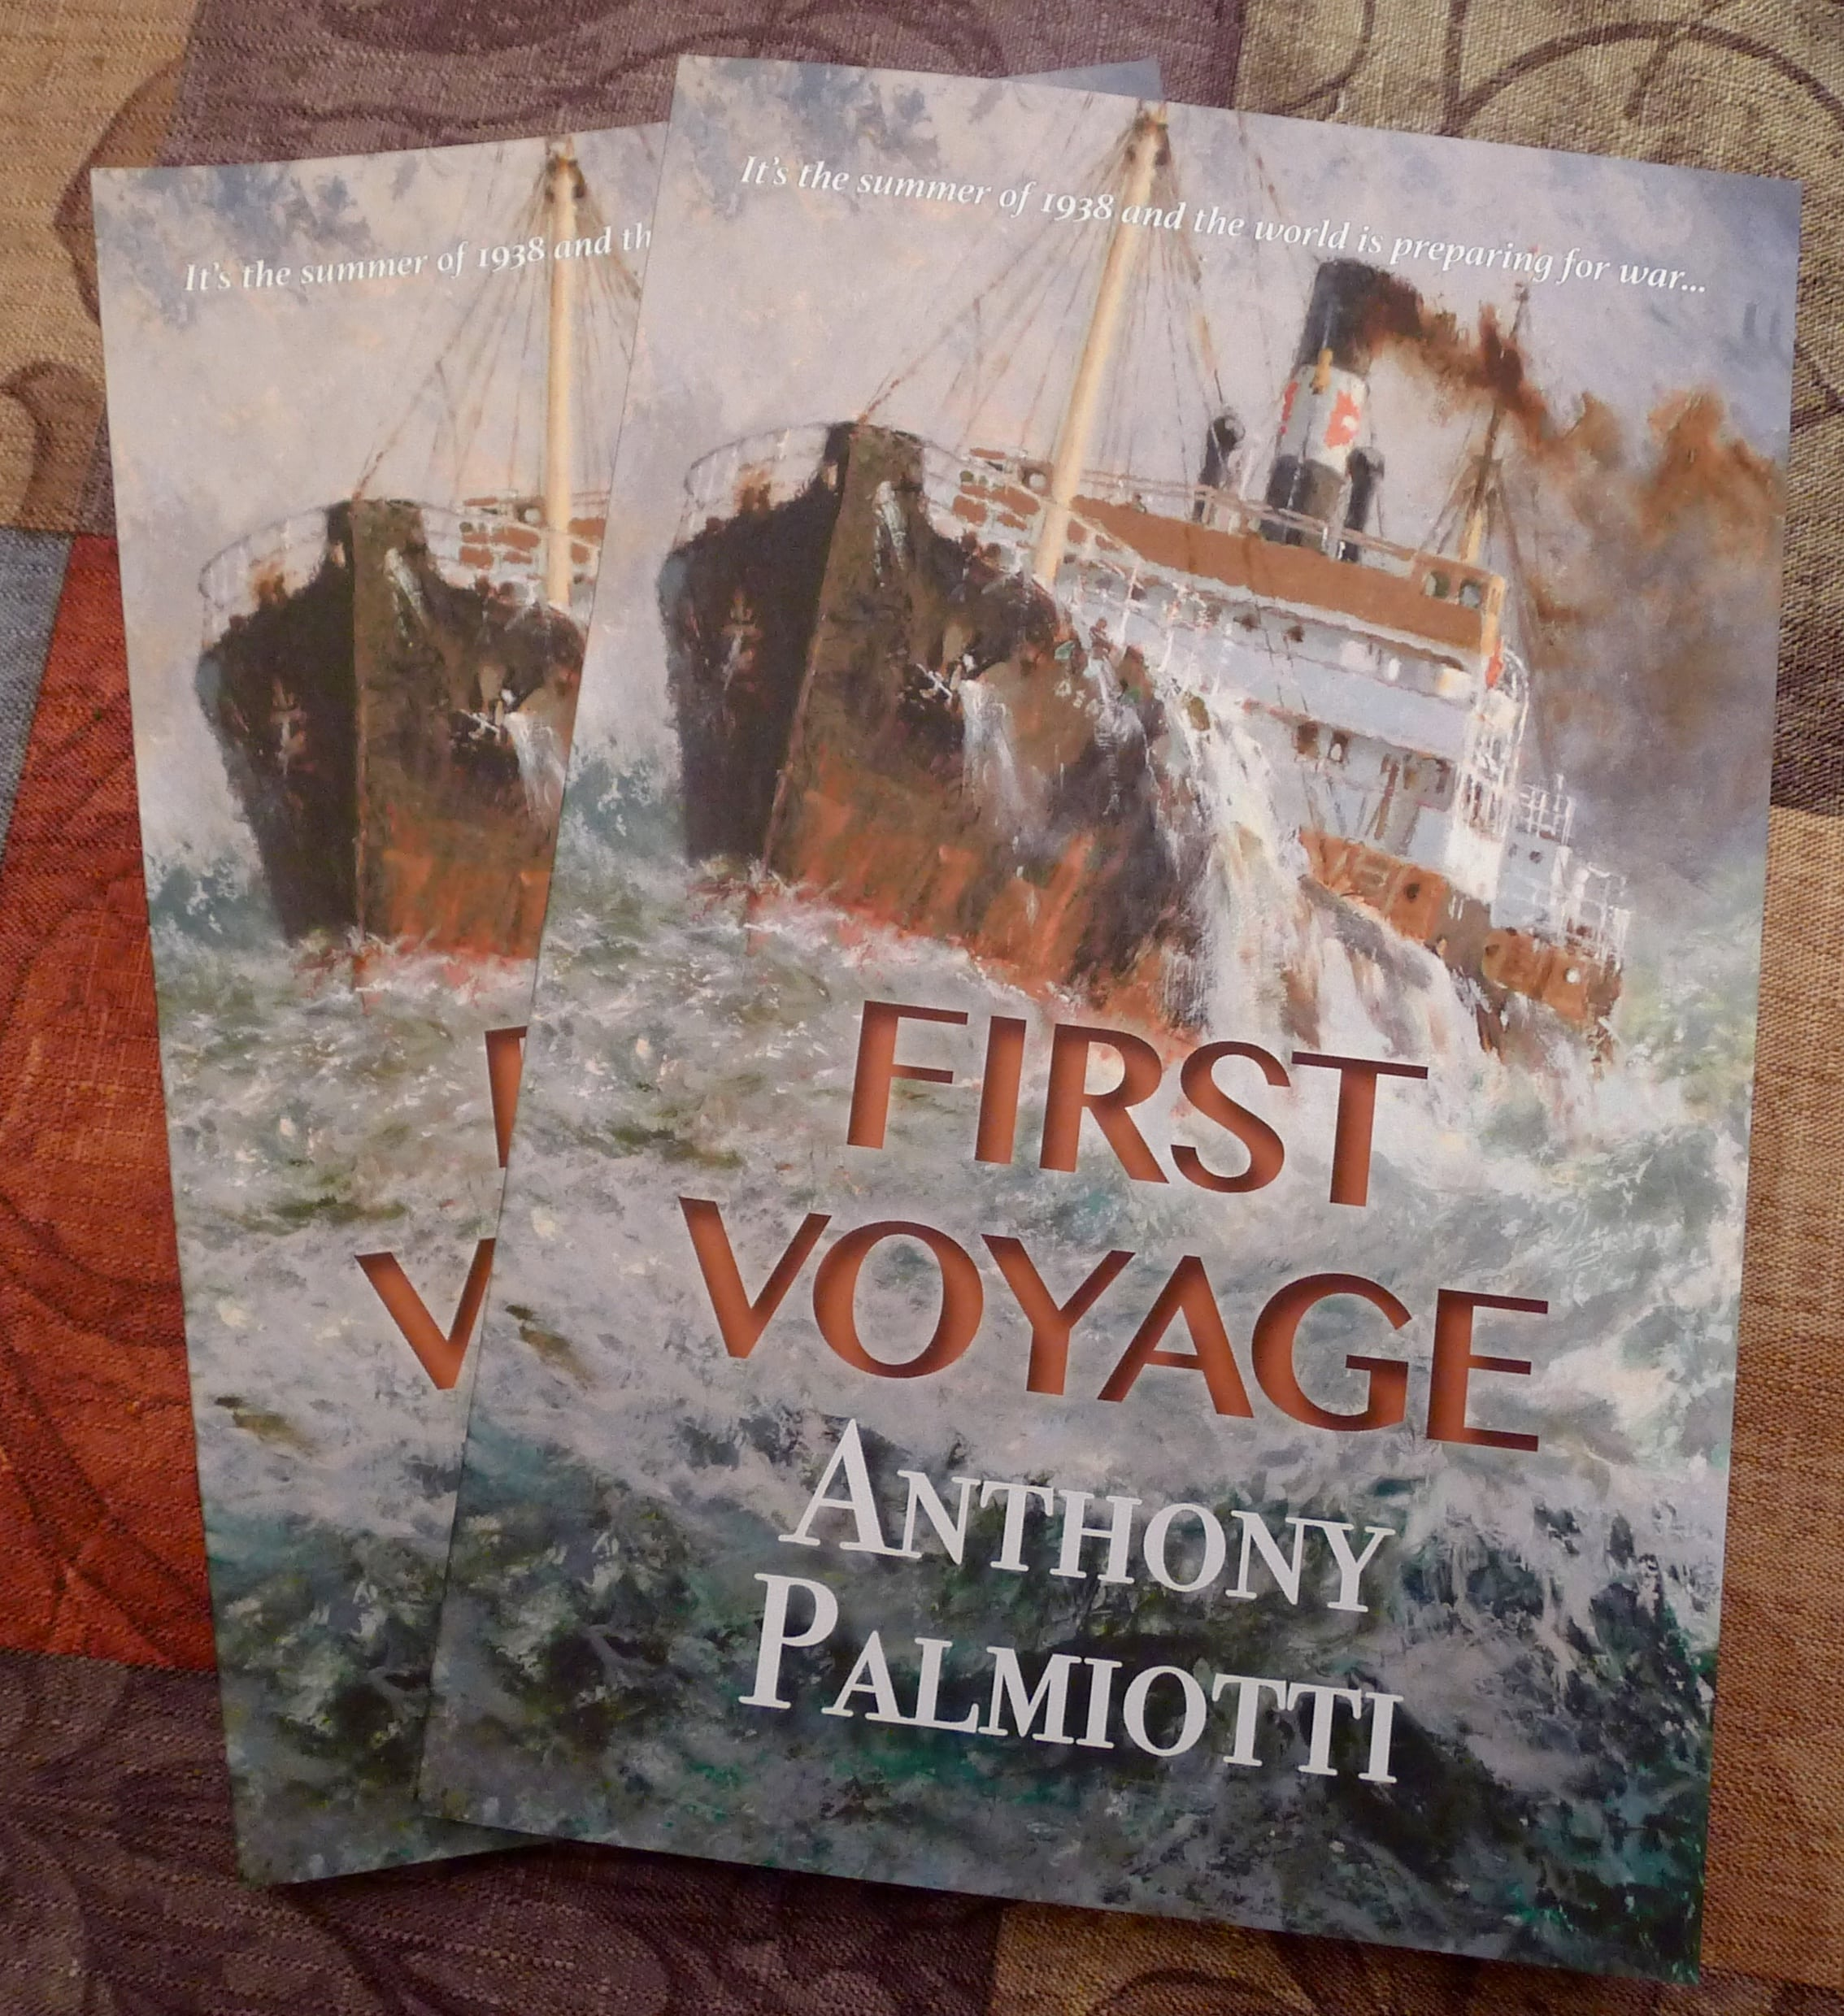 First Voyage: Anthony Palmiotti, author